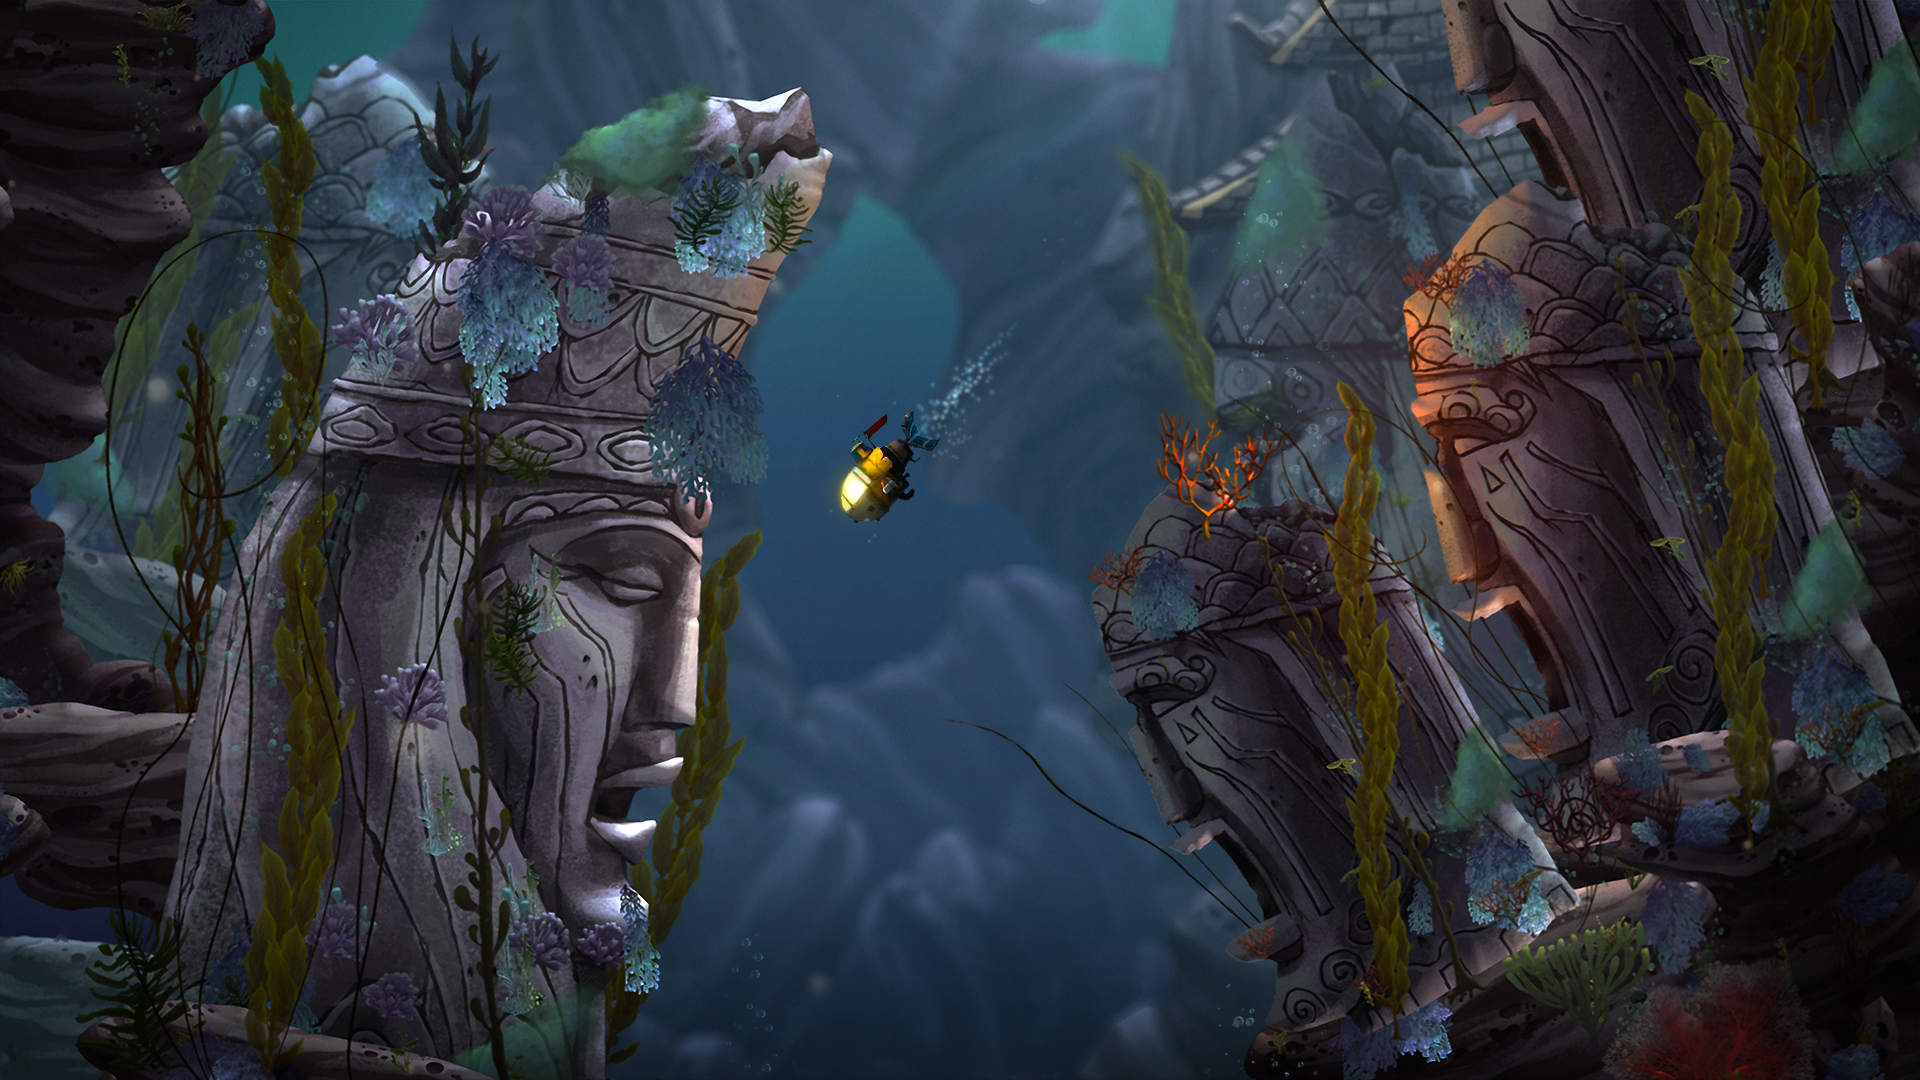 Creature 3d Movie Wallpaper Download Song Of The Deep Insomniac Games